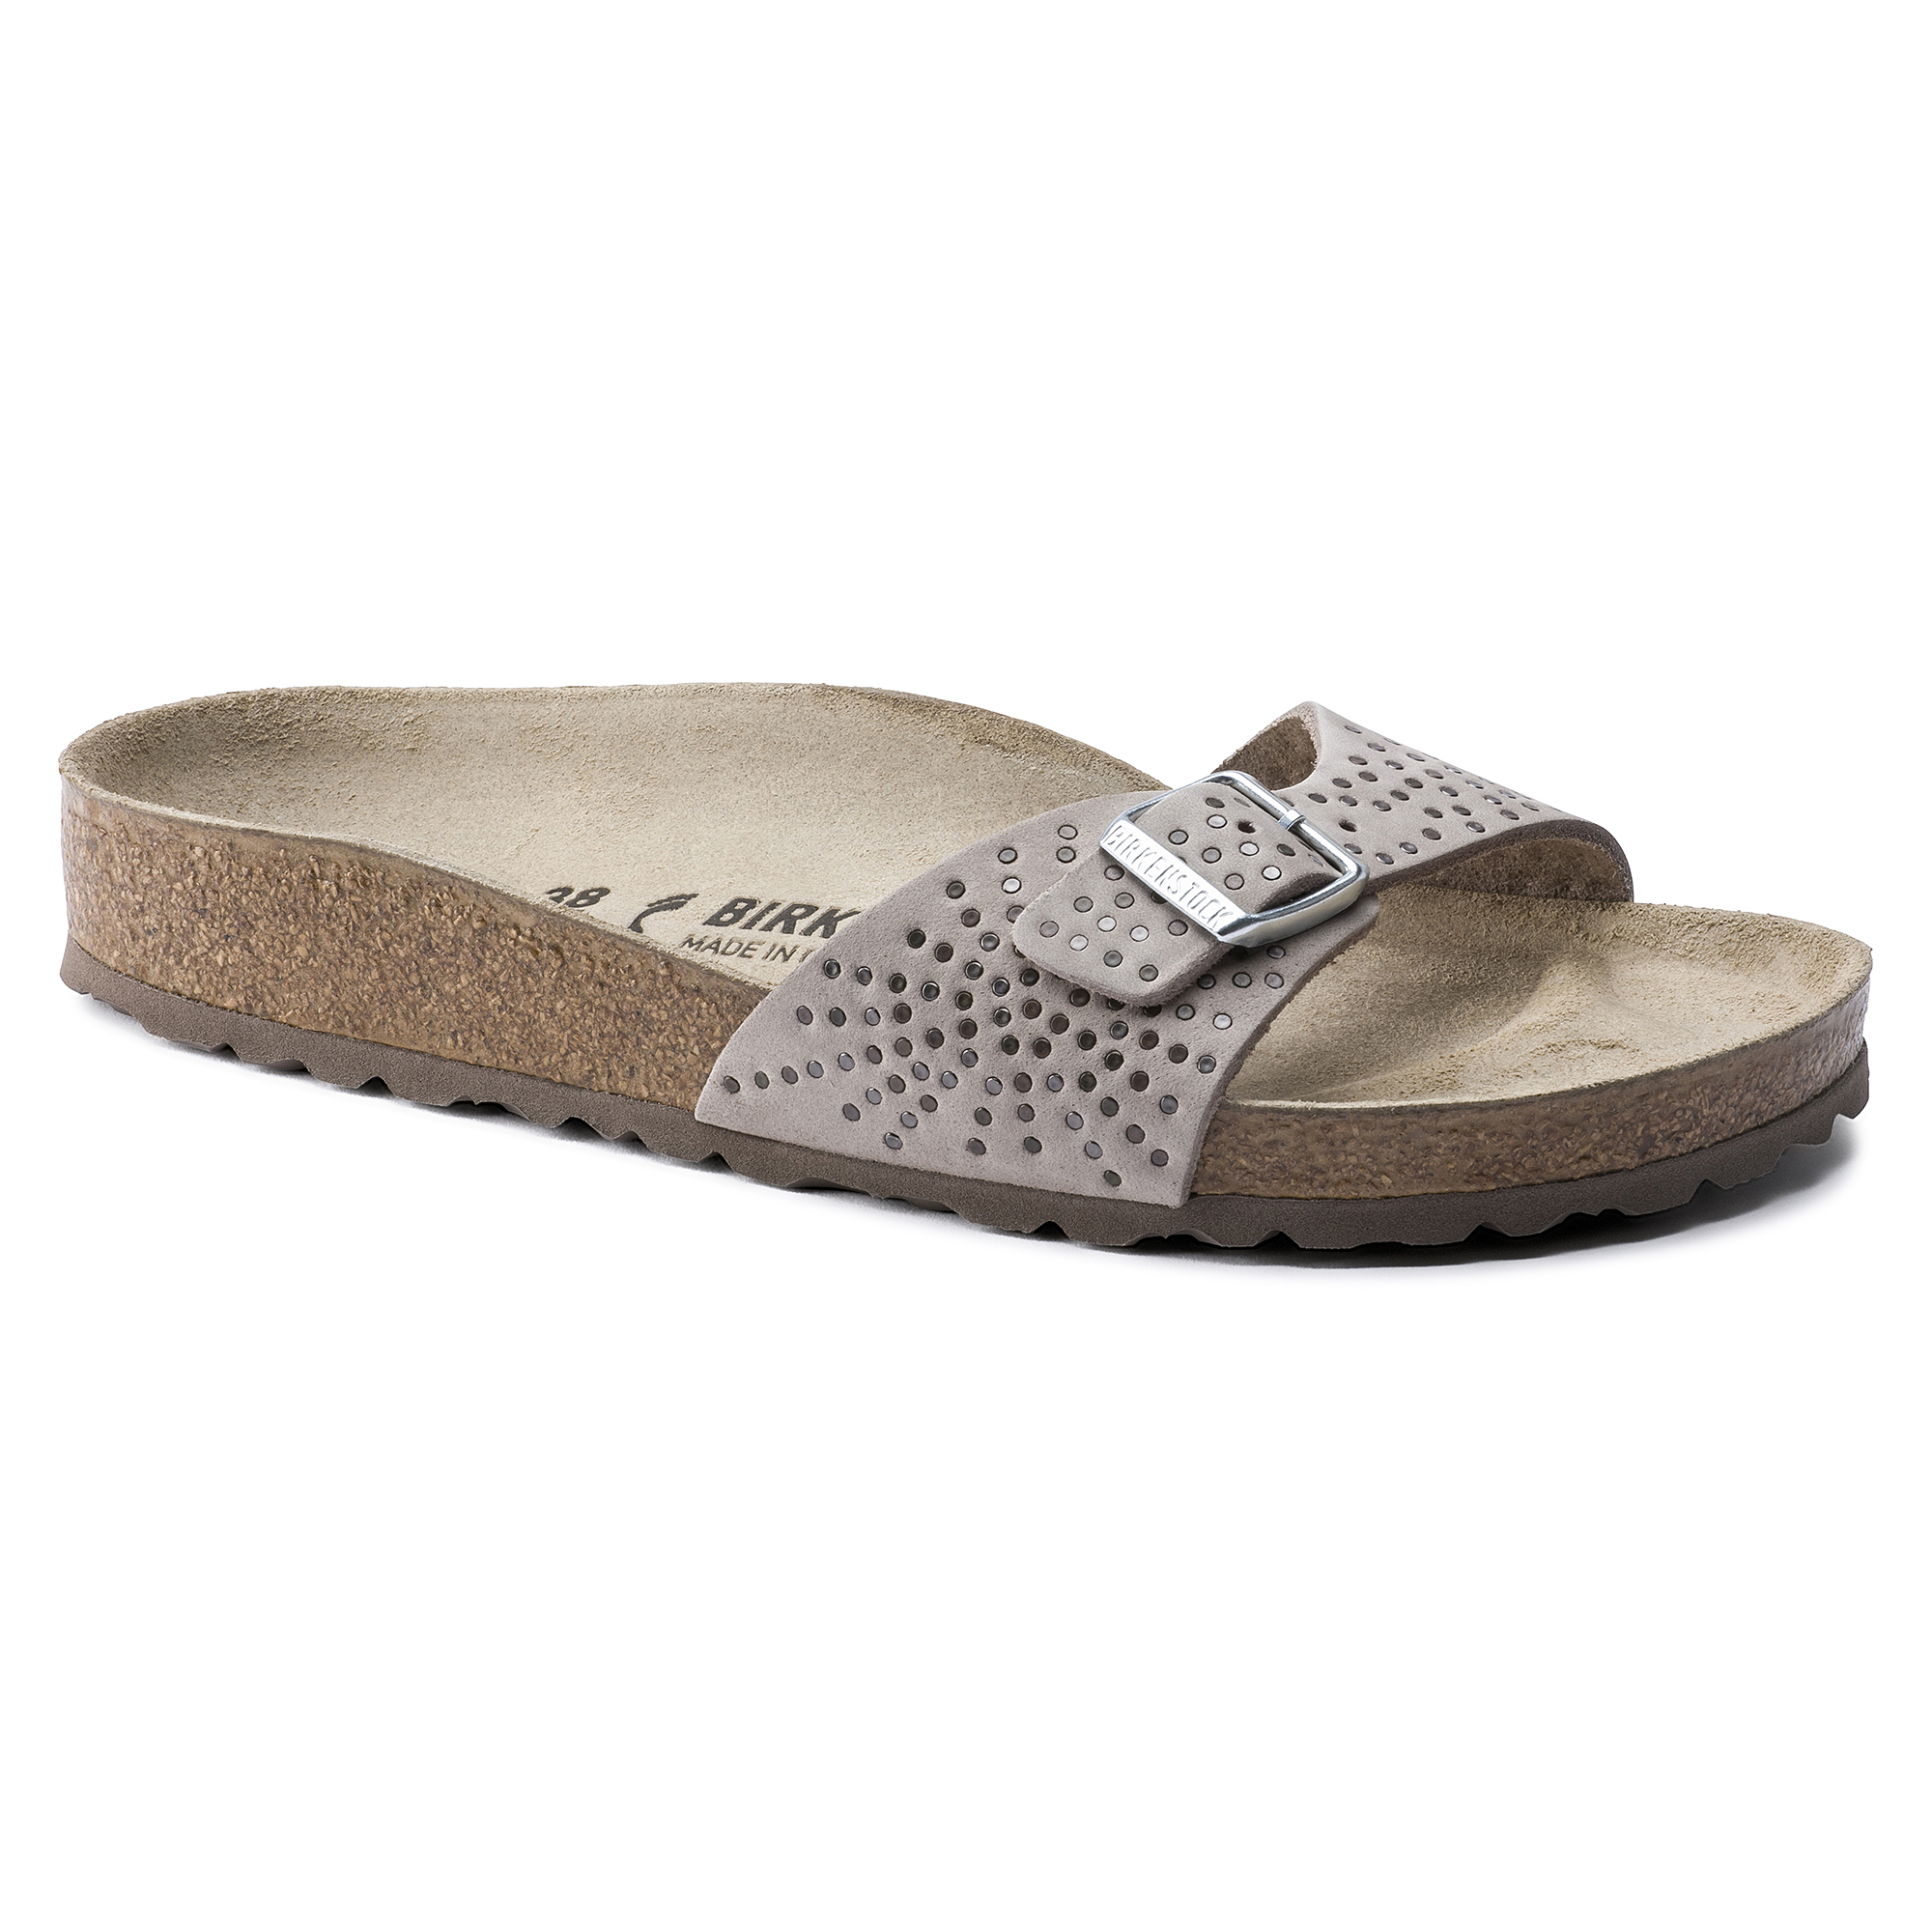 BIRKENSTOCK Arizona sandals crafted rivets avario, 41